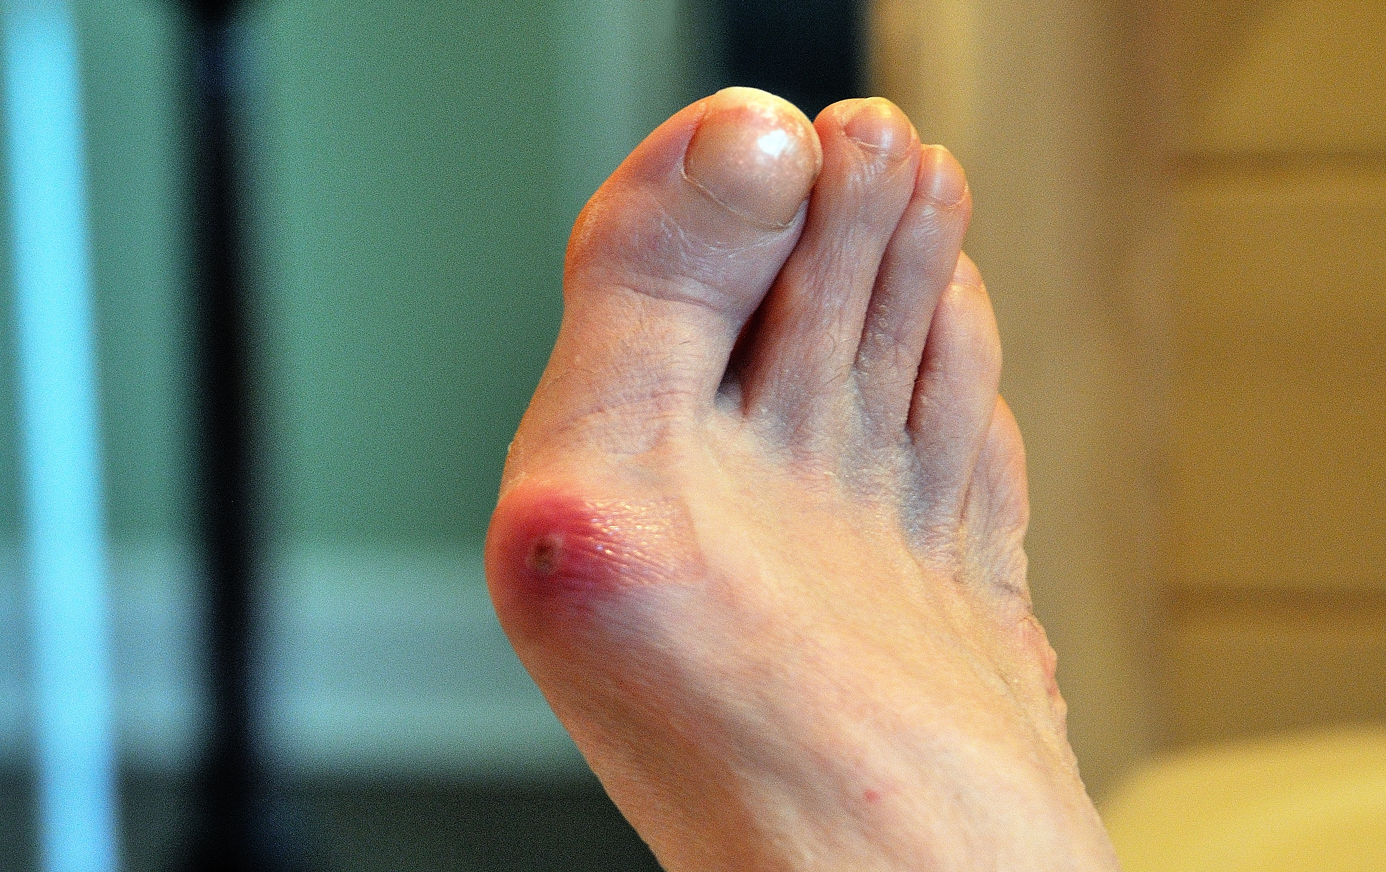 Prevent Bunion Growth